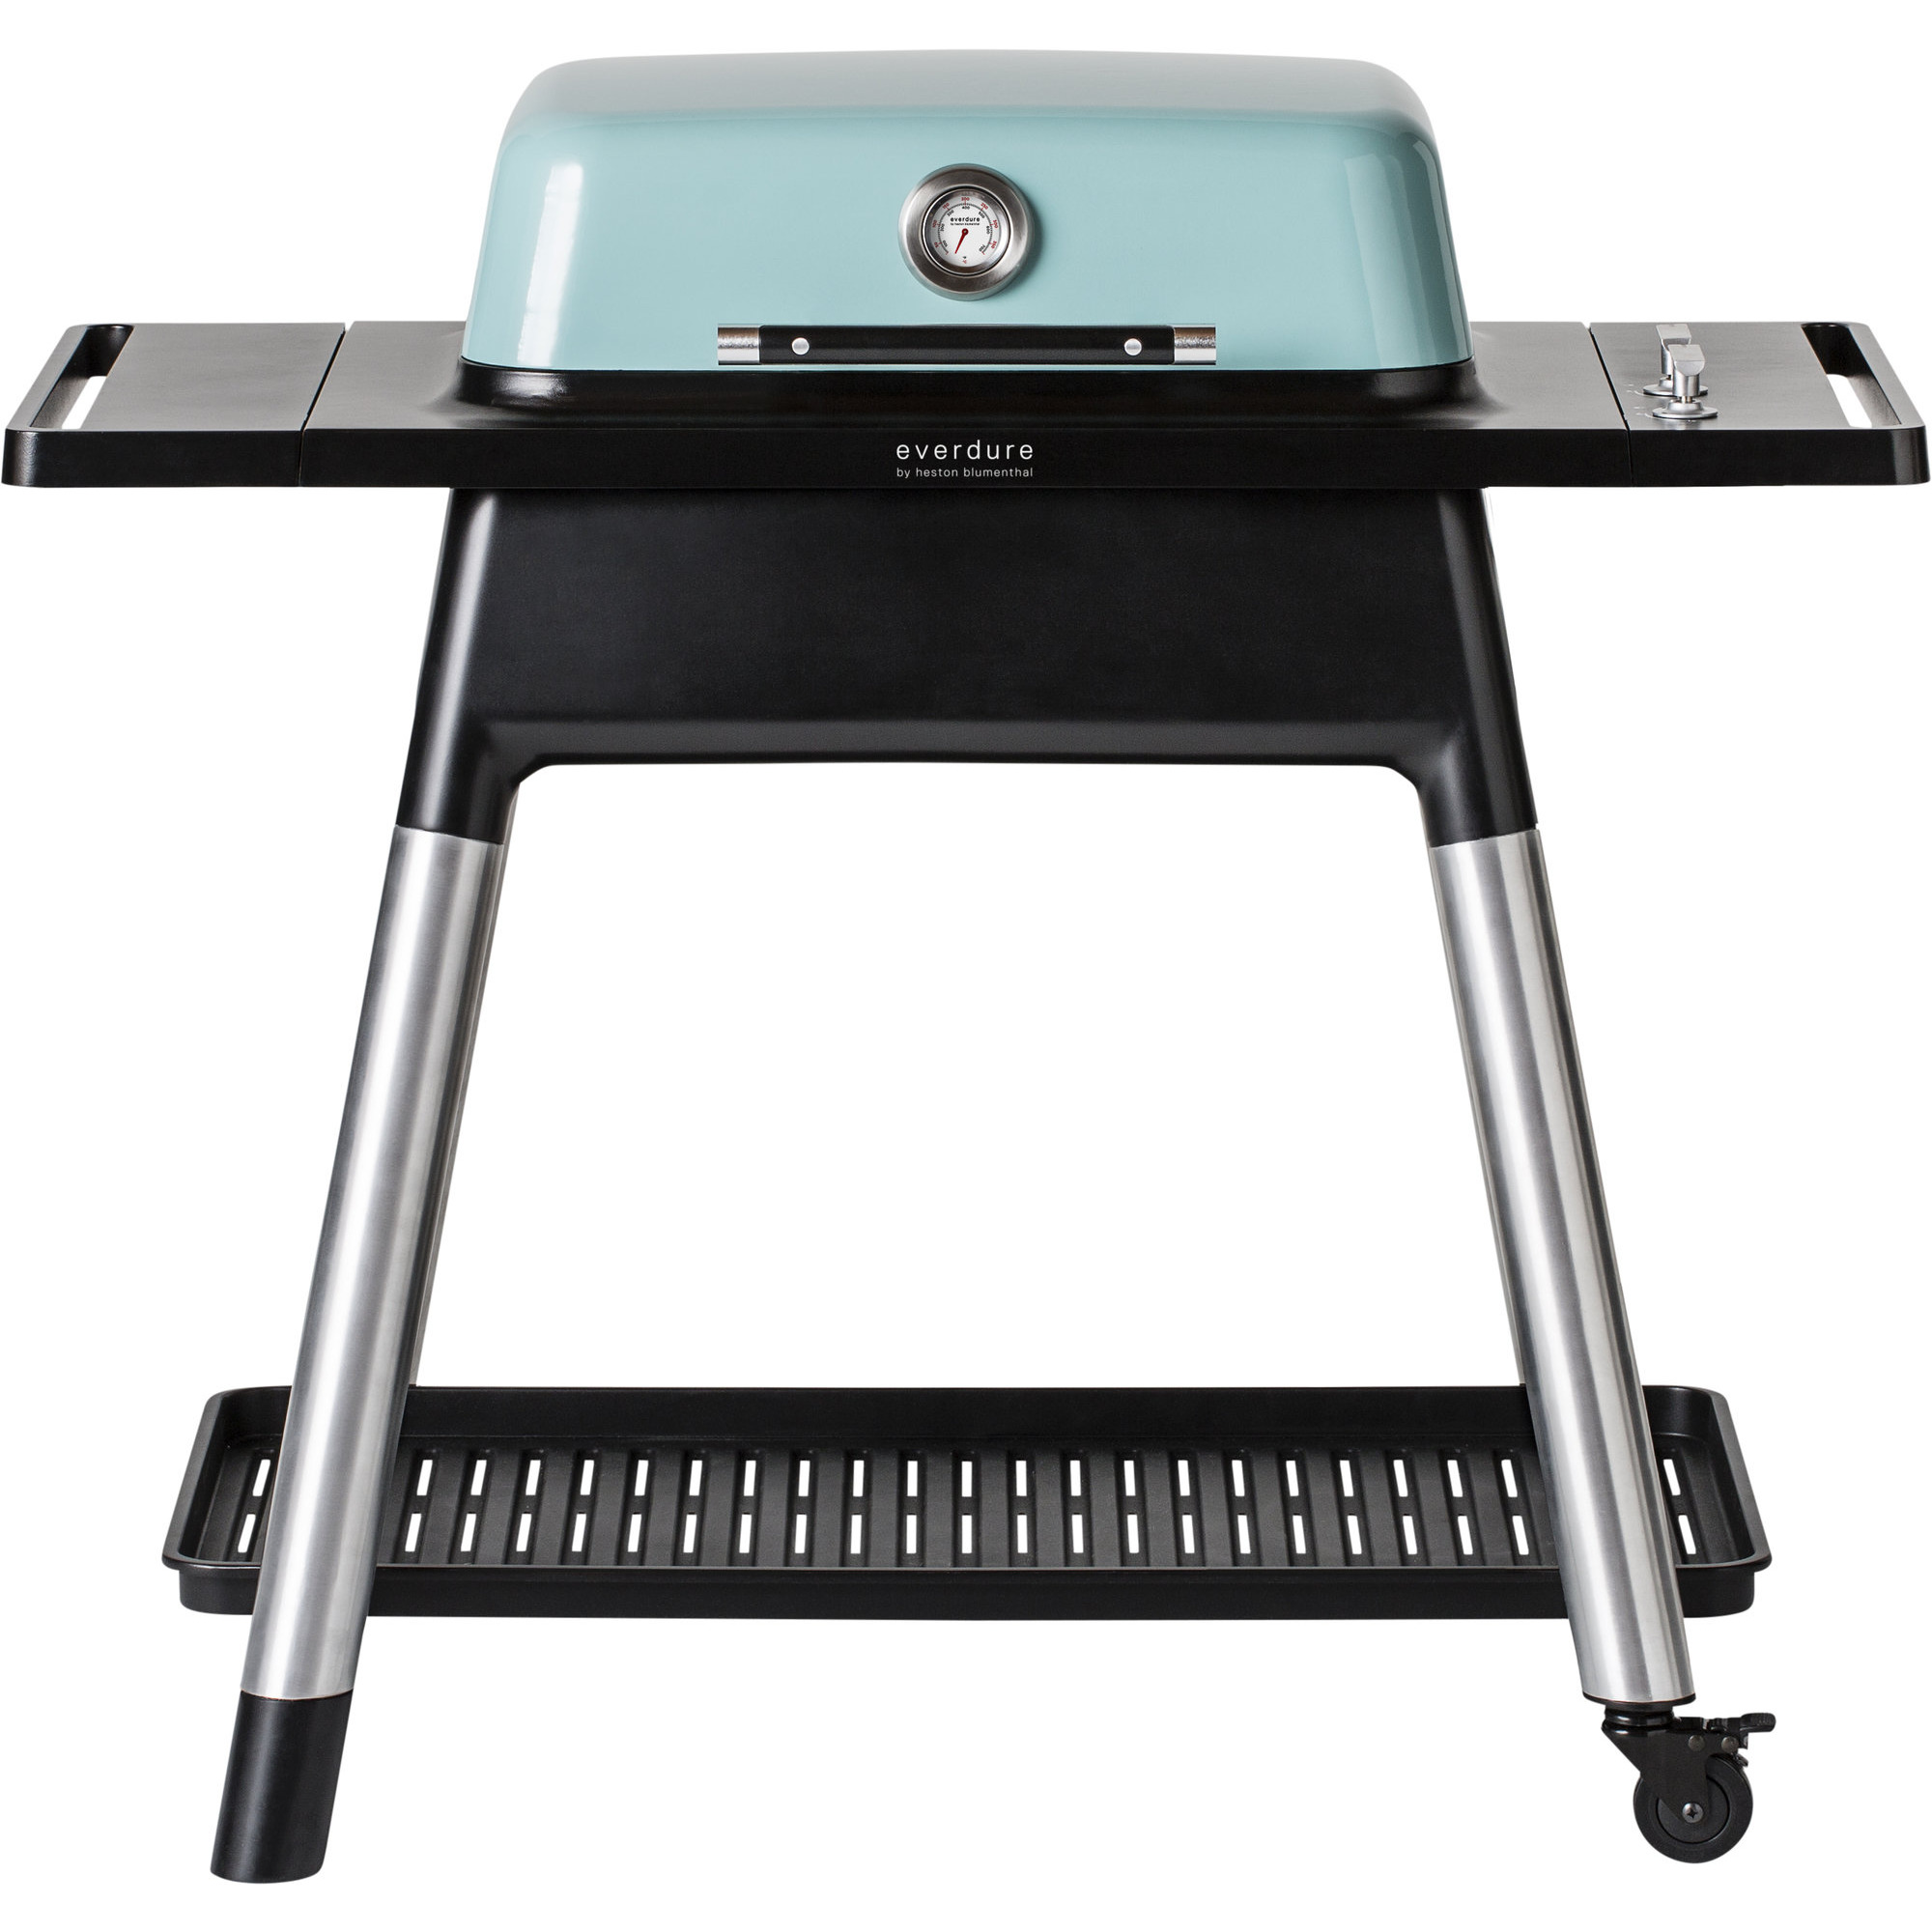 Everdure gas grill HBG2M Force mint